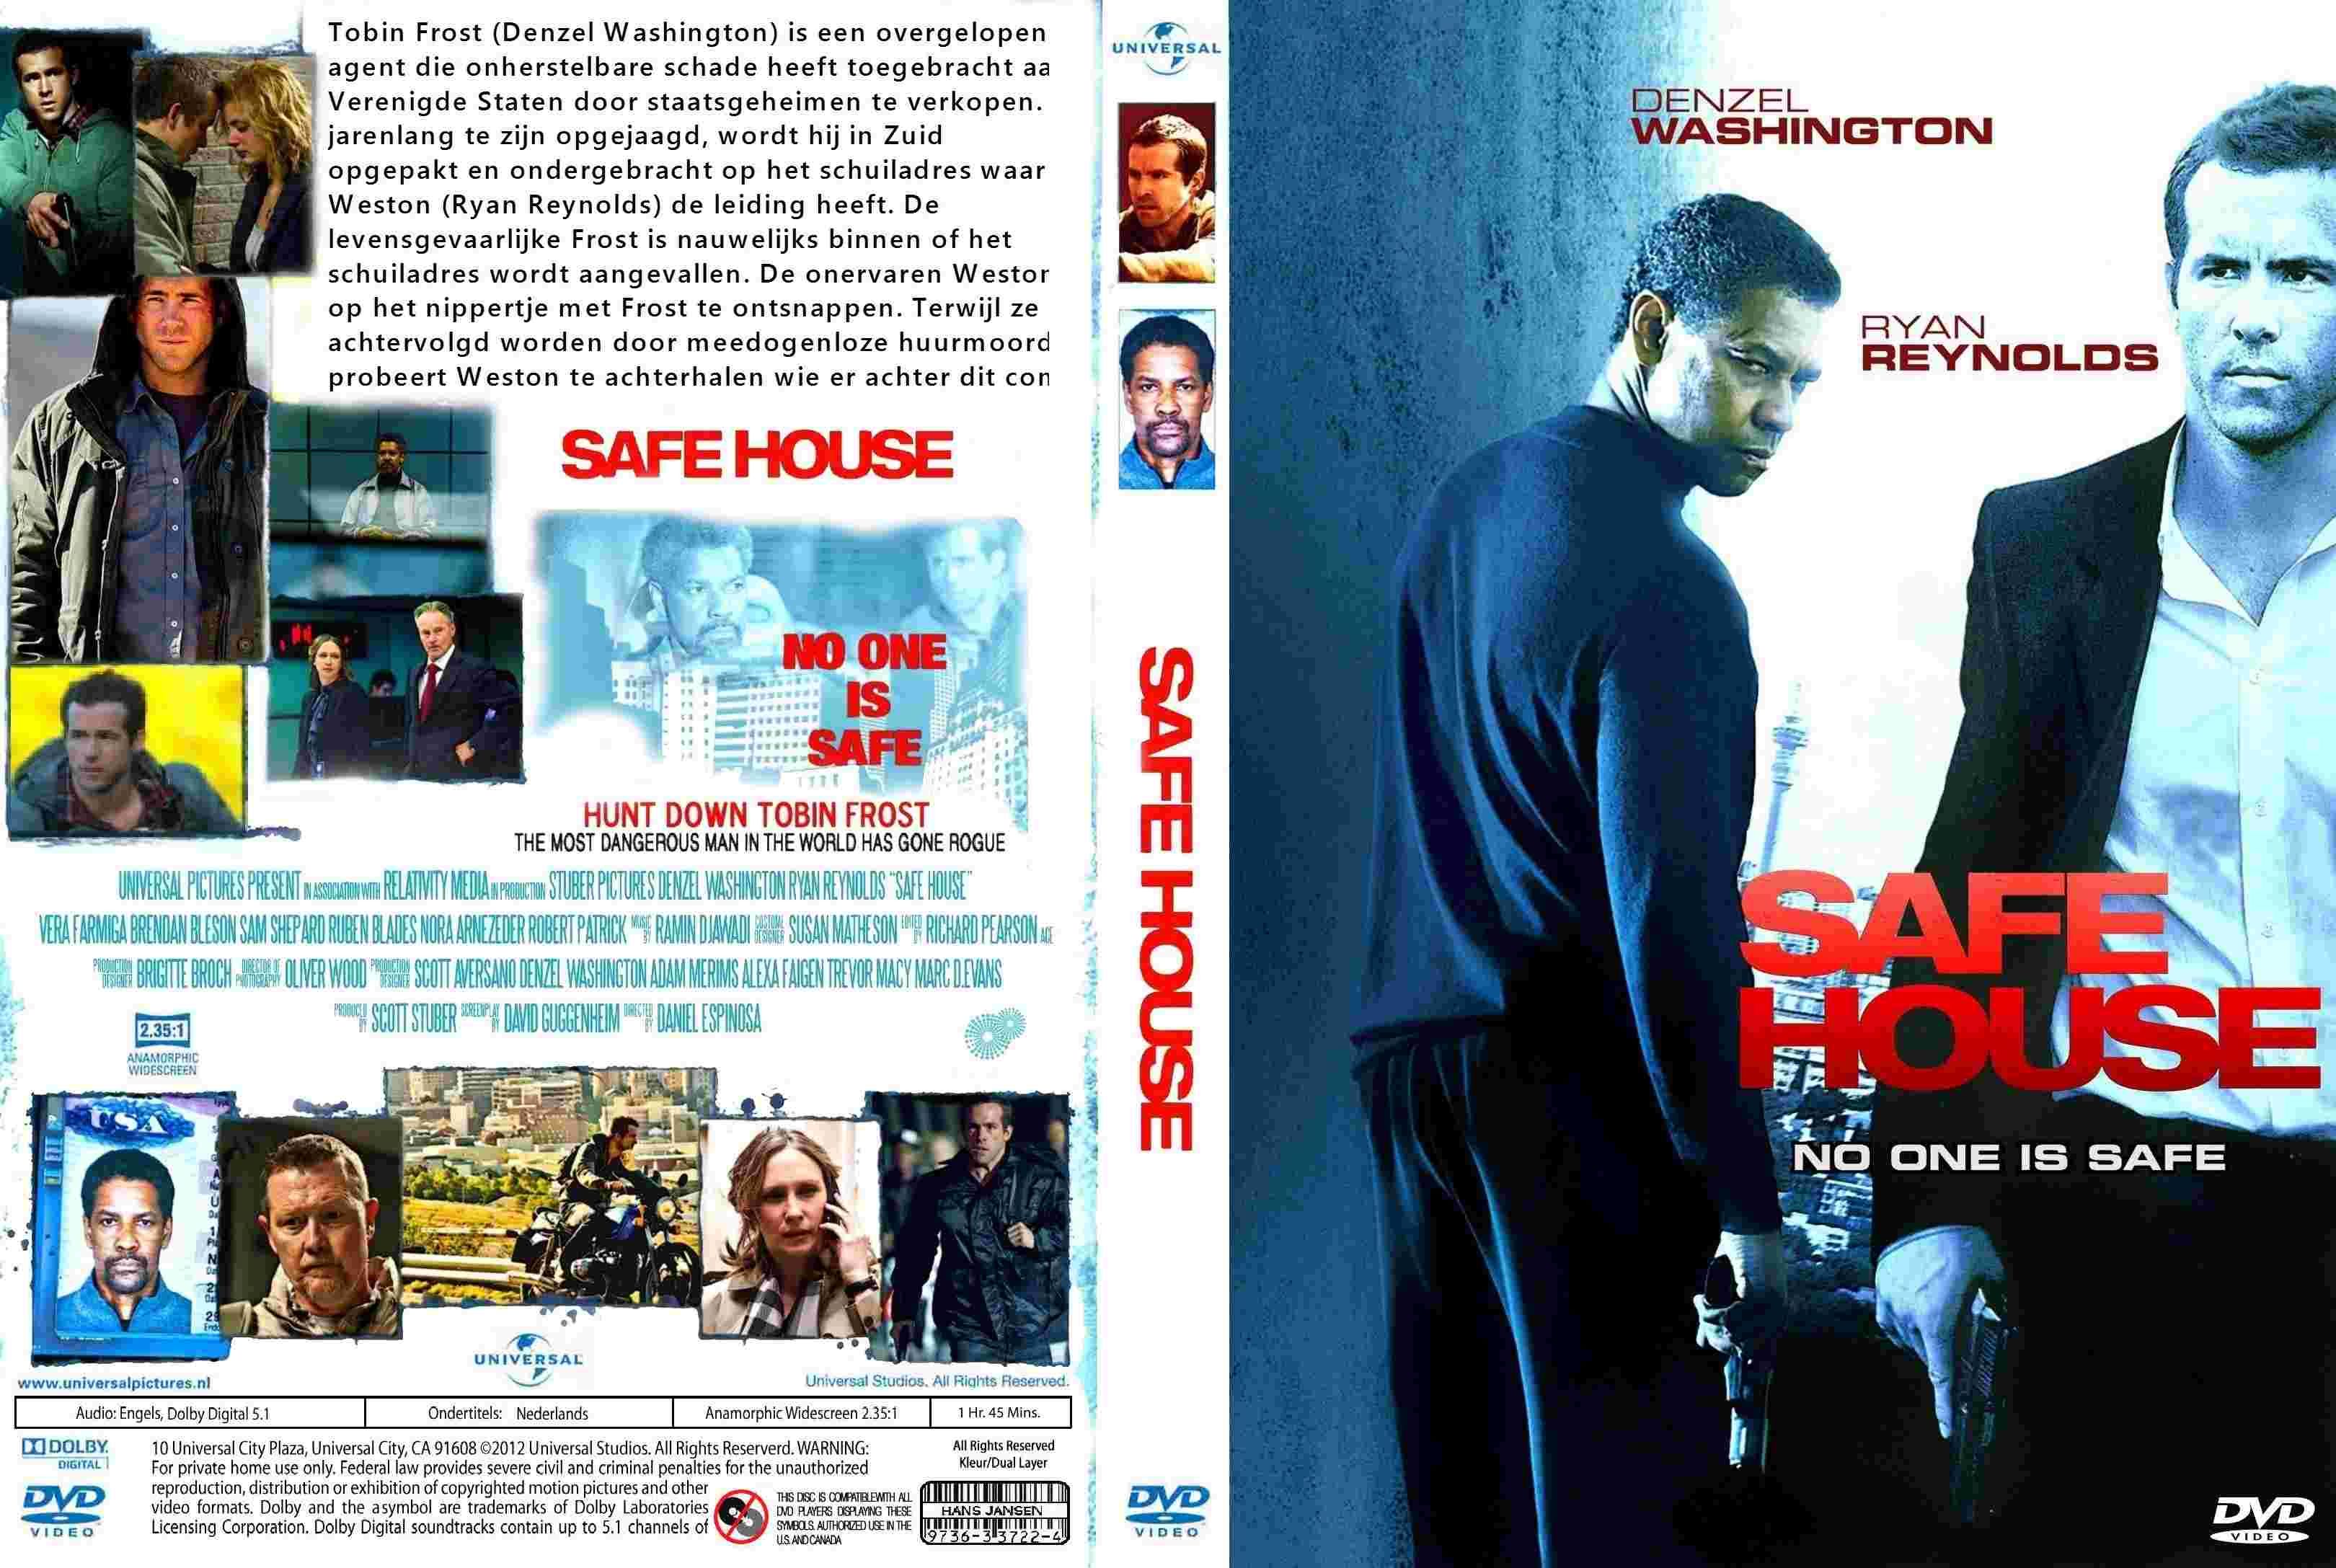 Safe House 2012 R2 Dutch Dvd Covers Cover Century Over 500 000 Album Art Covers For Free